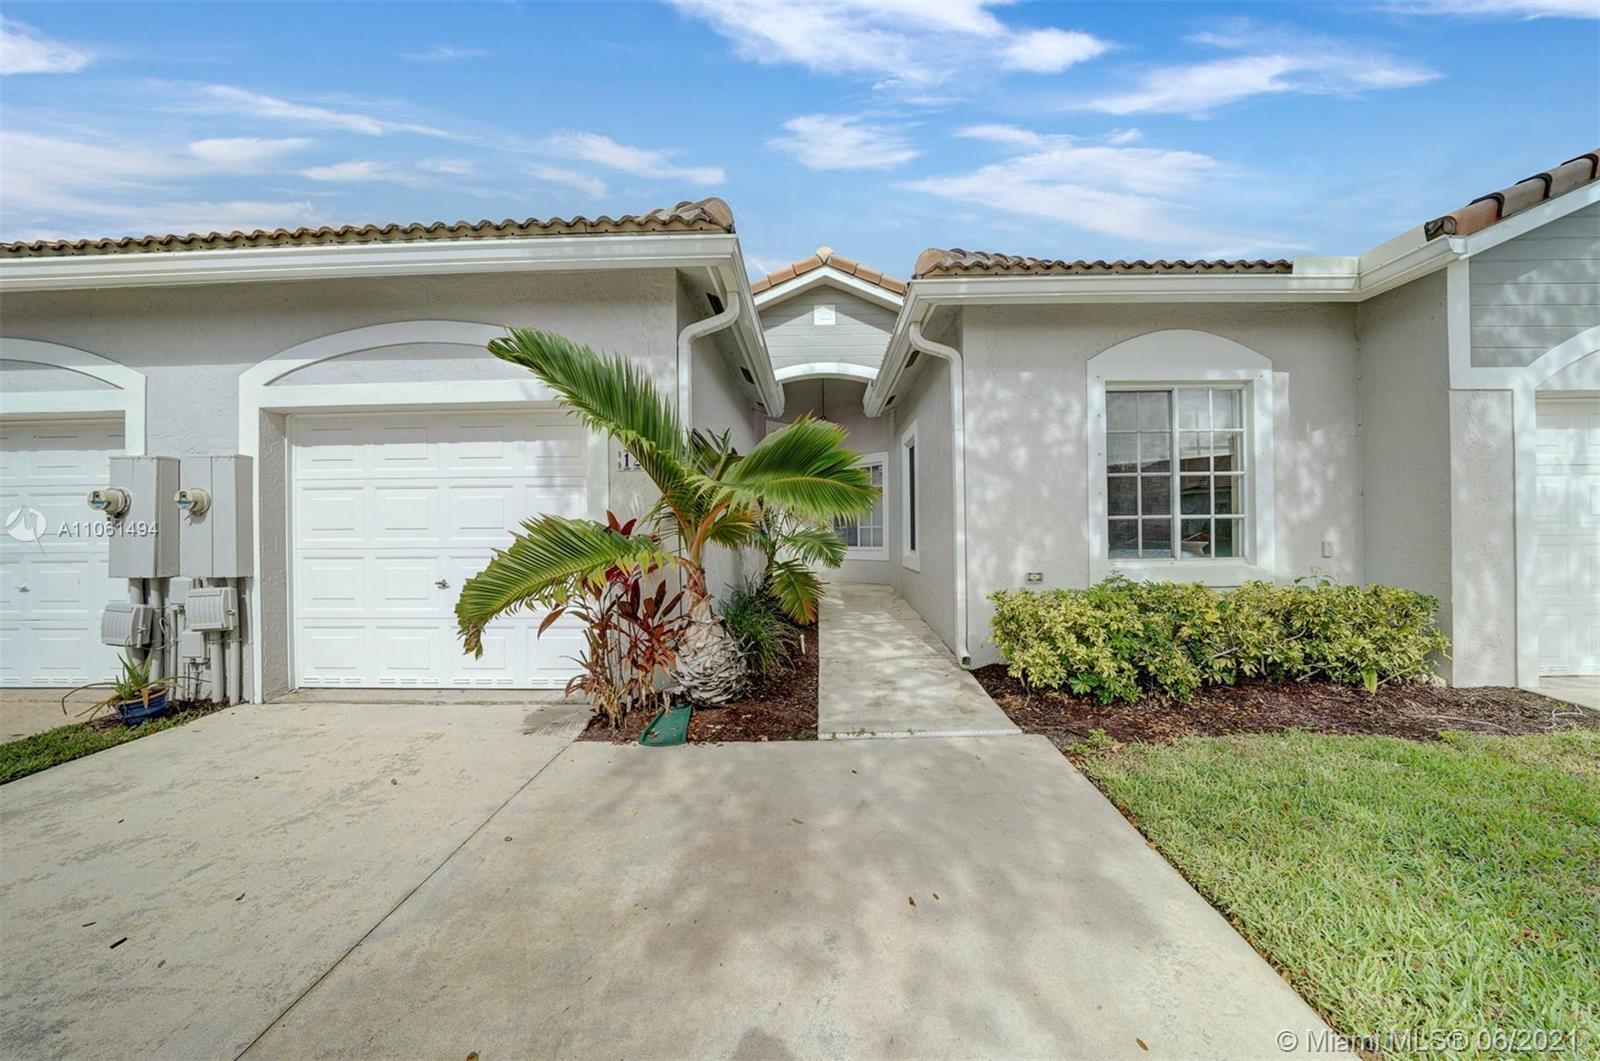 Located in the desirable Waterways community, this spacious 3 Bedroom, 2 Bath Villa is conveniently